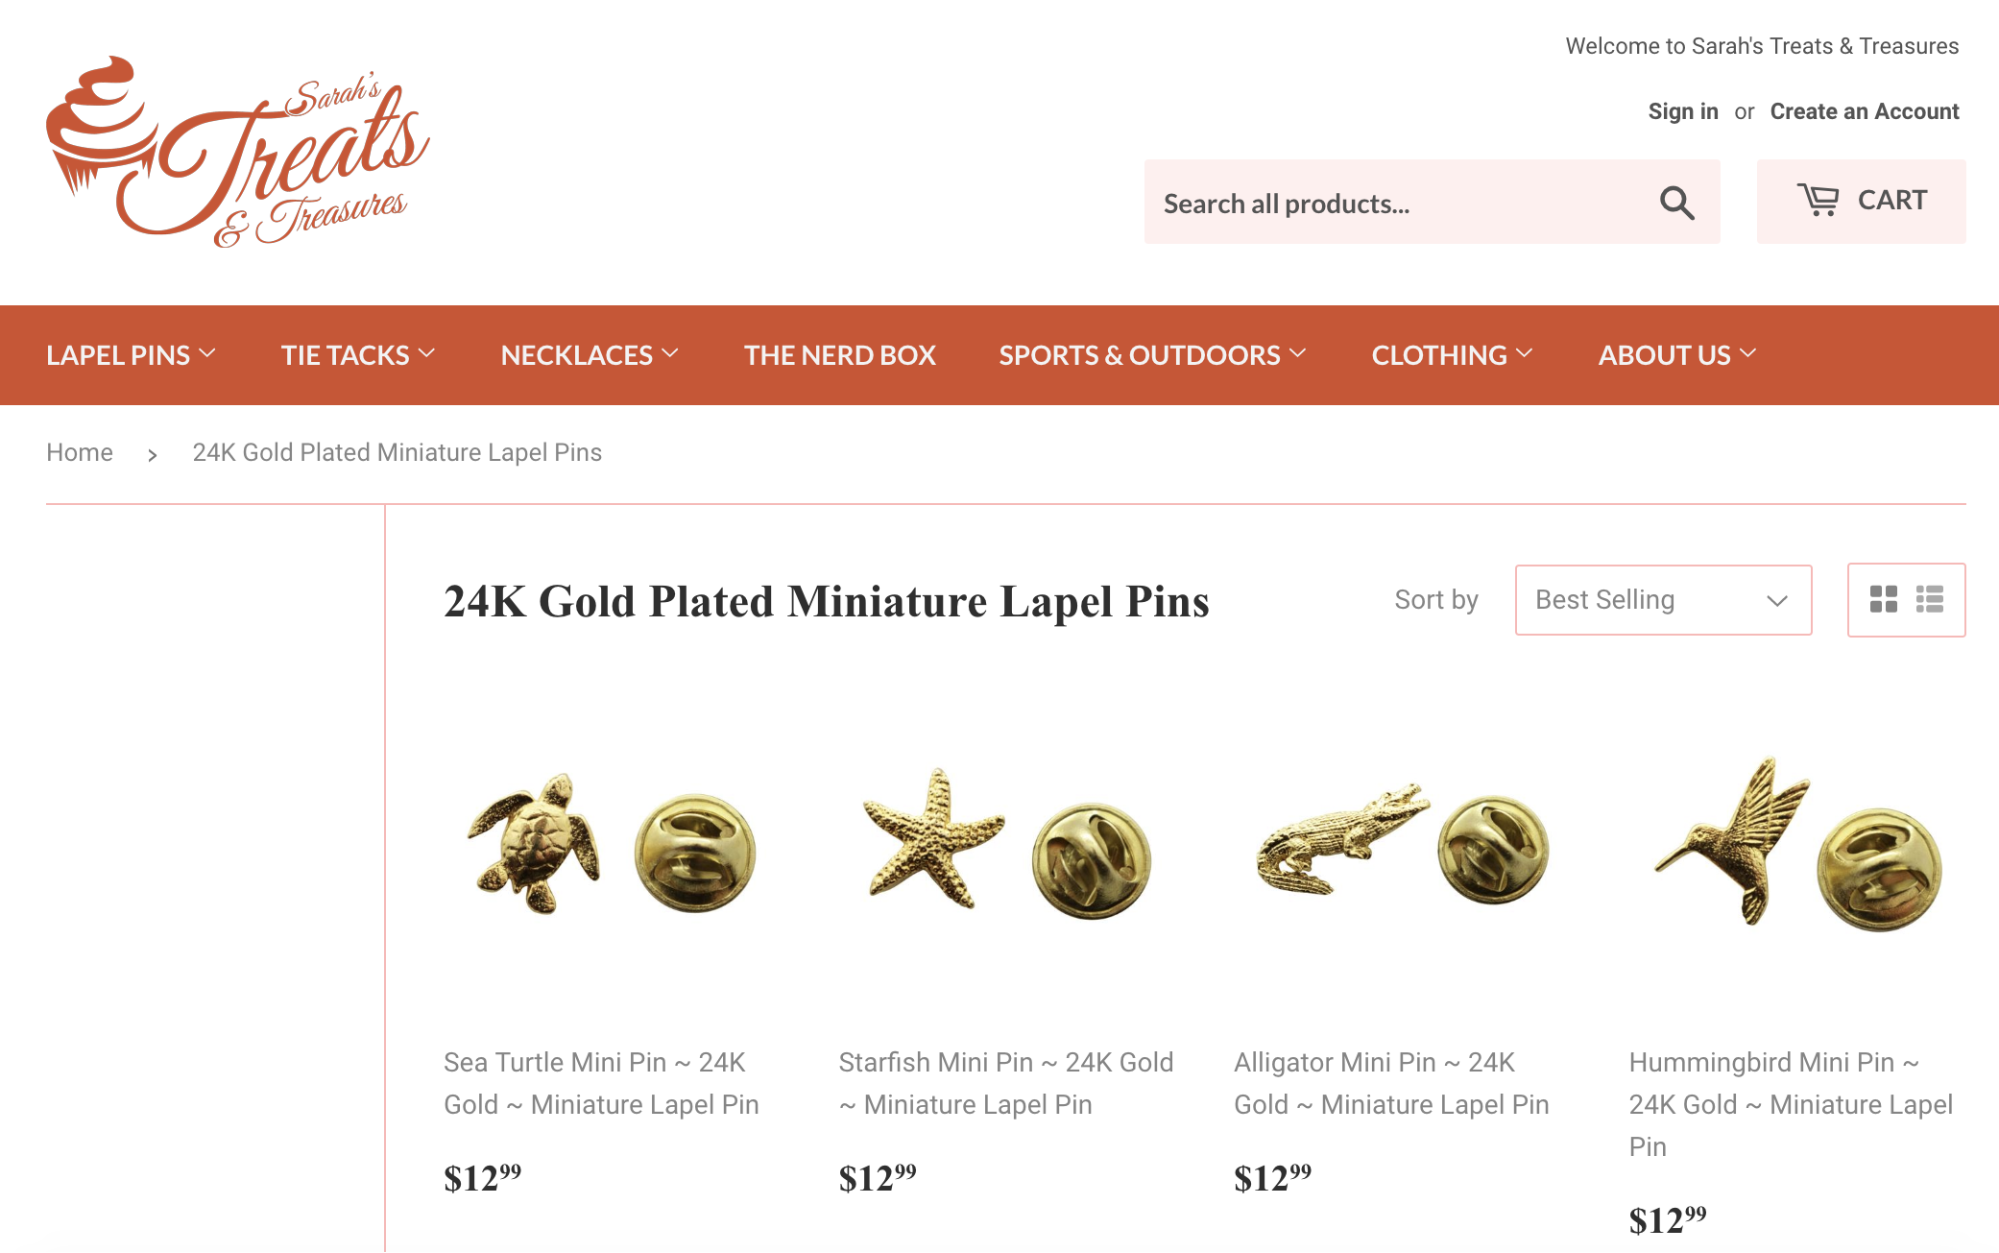 The Sarah's Treats and Treasures Shopify store